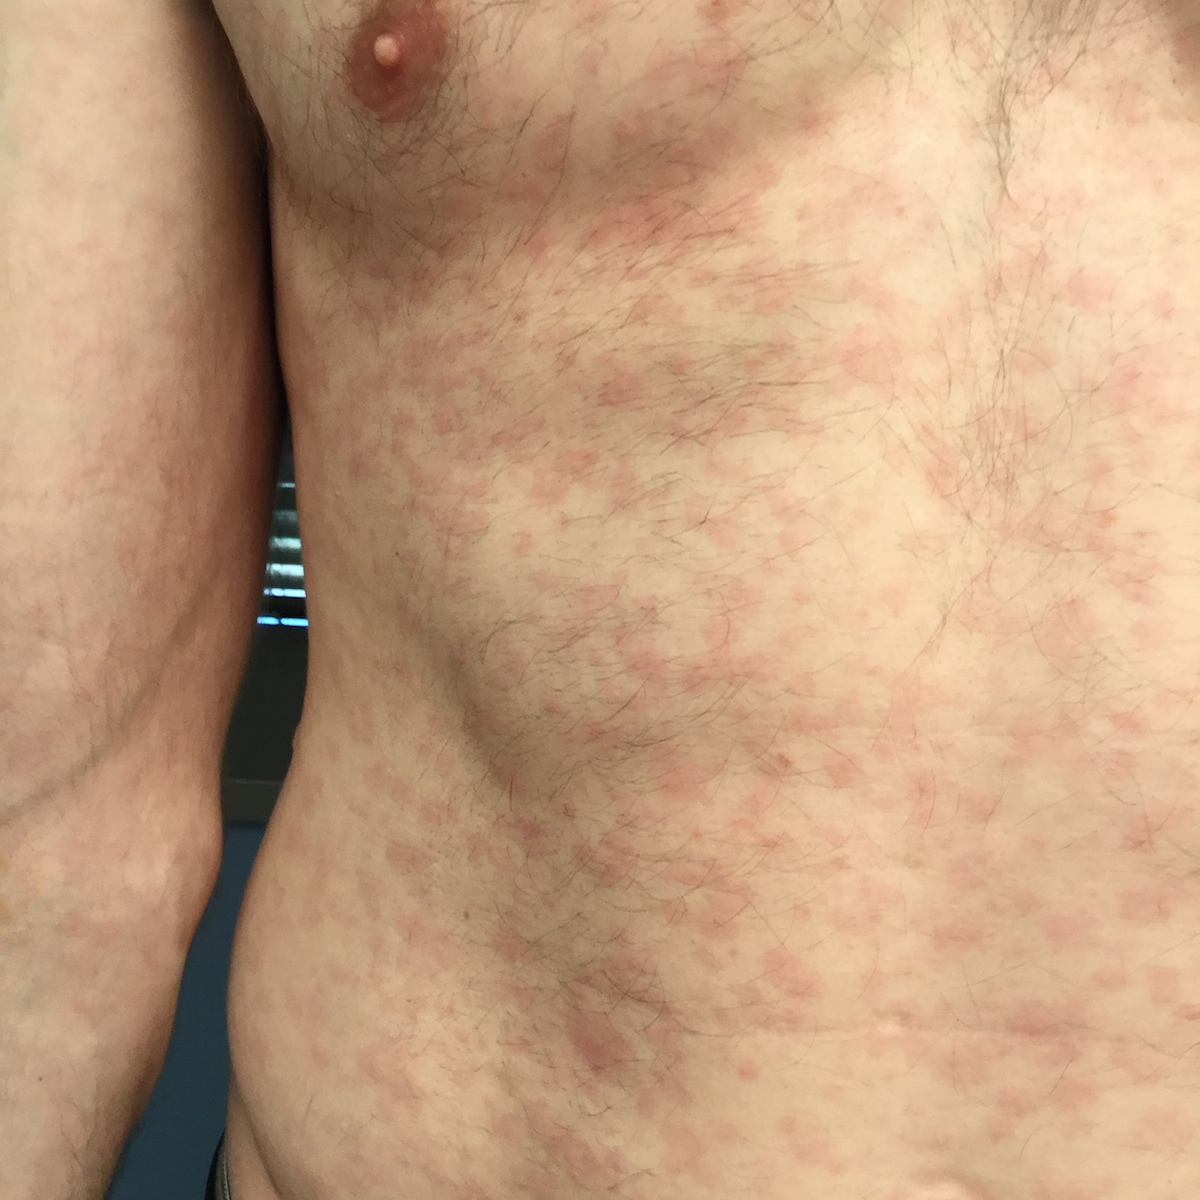 This patient with secondary syphilis developed a diffuse erythematous macular rash prominent on the chest, back, palms, and soles.<div>Photograph credit: Negusse Ocbamichael, PA; Public Health—Seattle & King County STD Clinic</div>